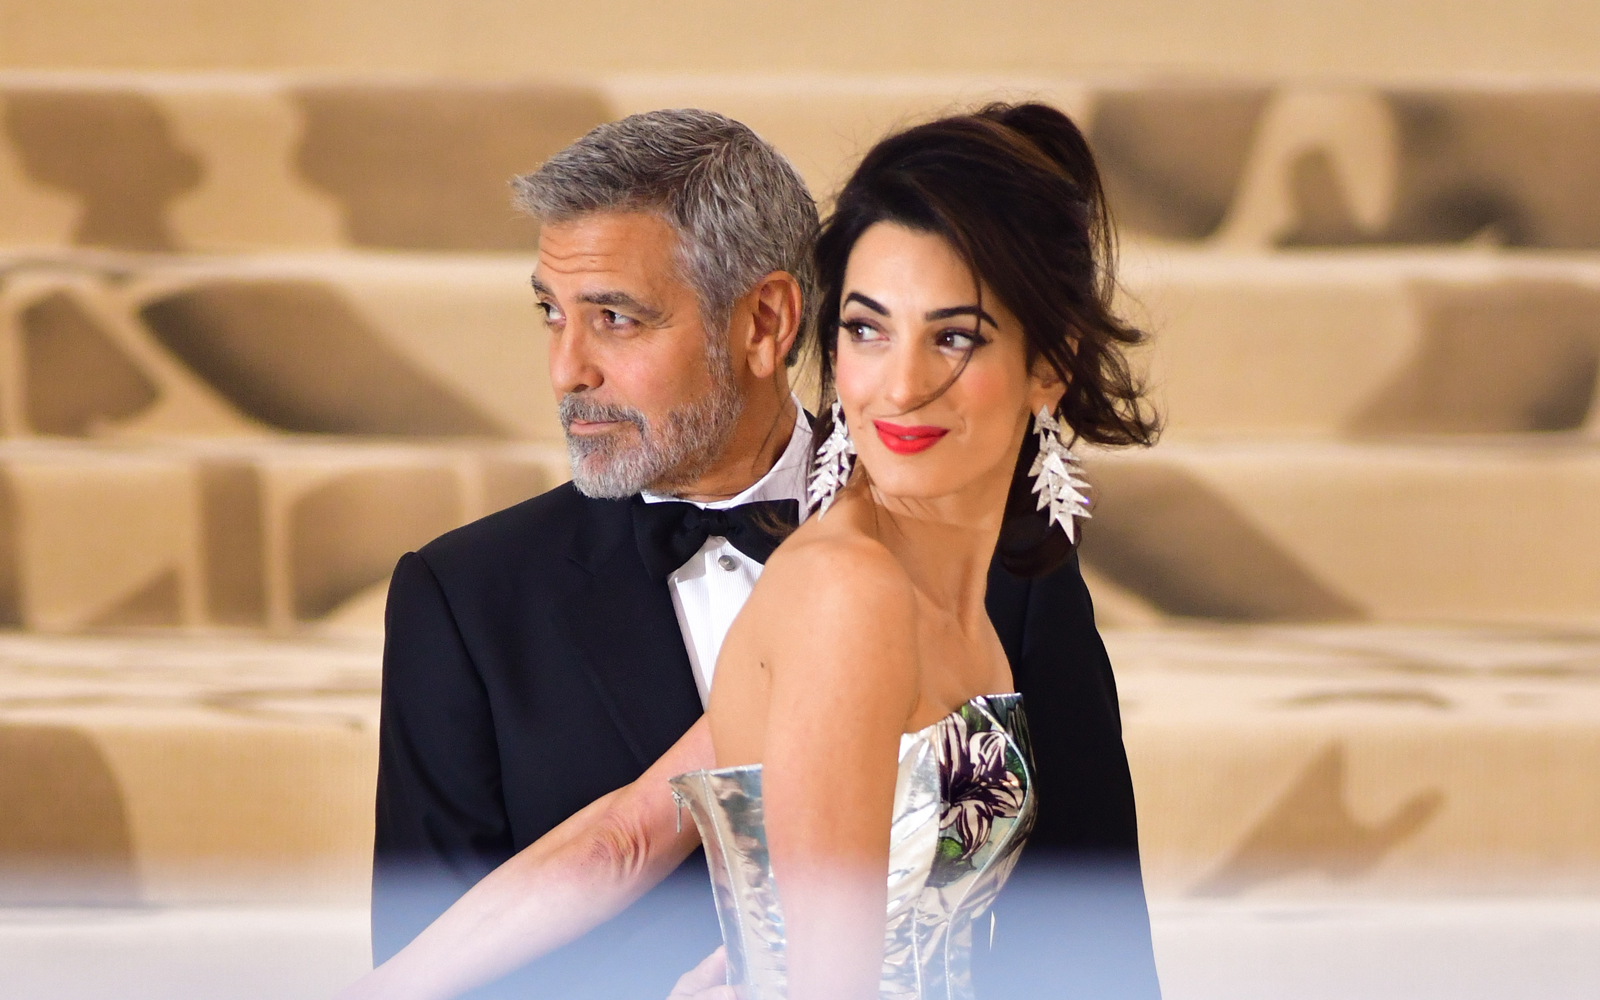 George and Amal Clooney Are on Vacation in Sardinia Eating 'Van Ham'